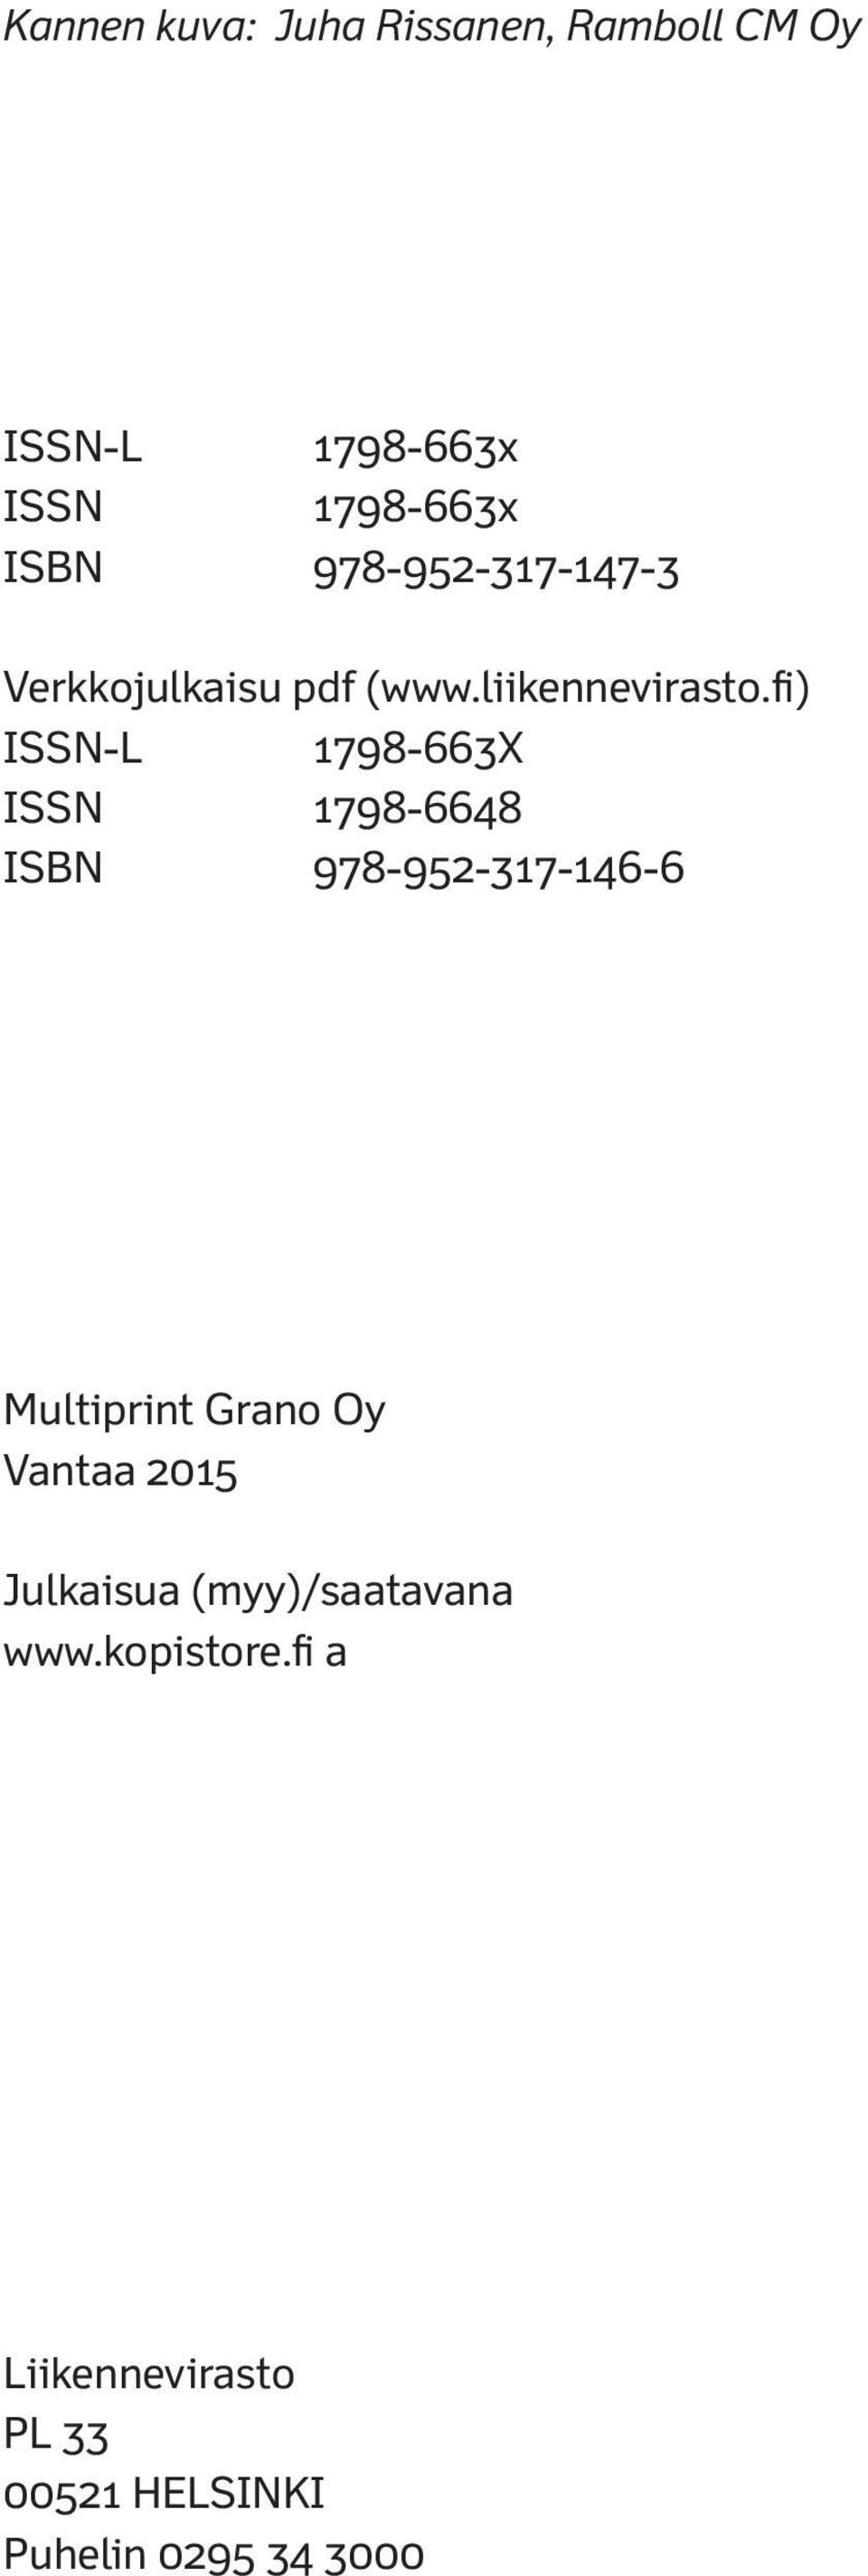 fi) ISSN-L 1798-663X ISSN 1798-6648 ISBN 978-952-317-146-6 Multiprint Grano Oy